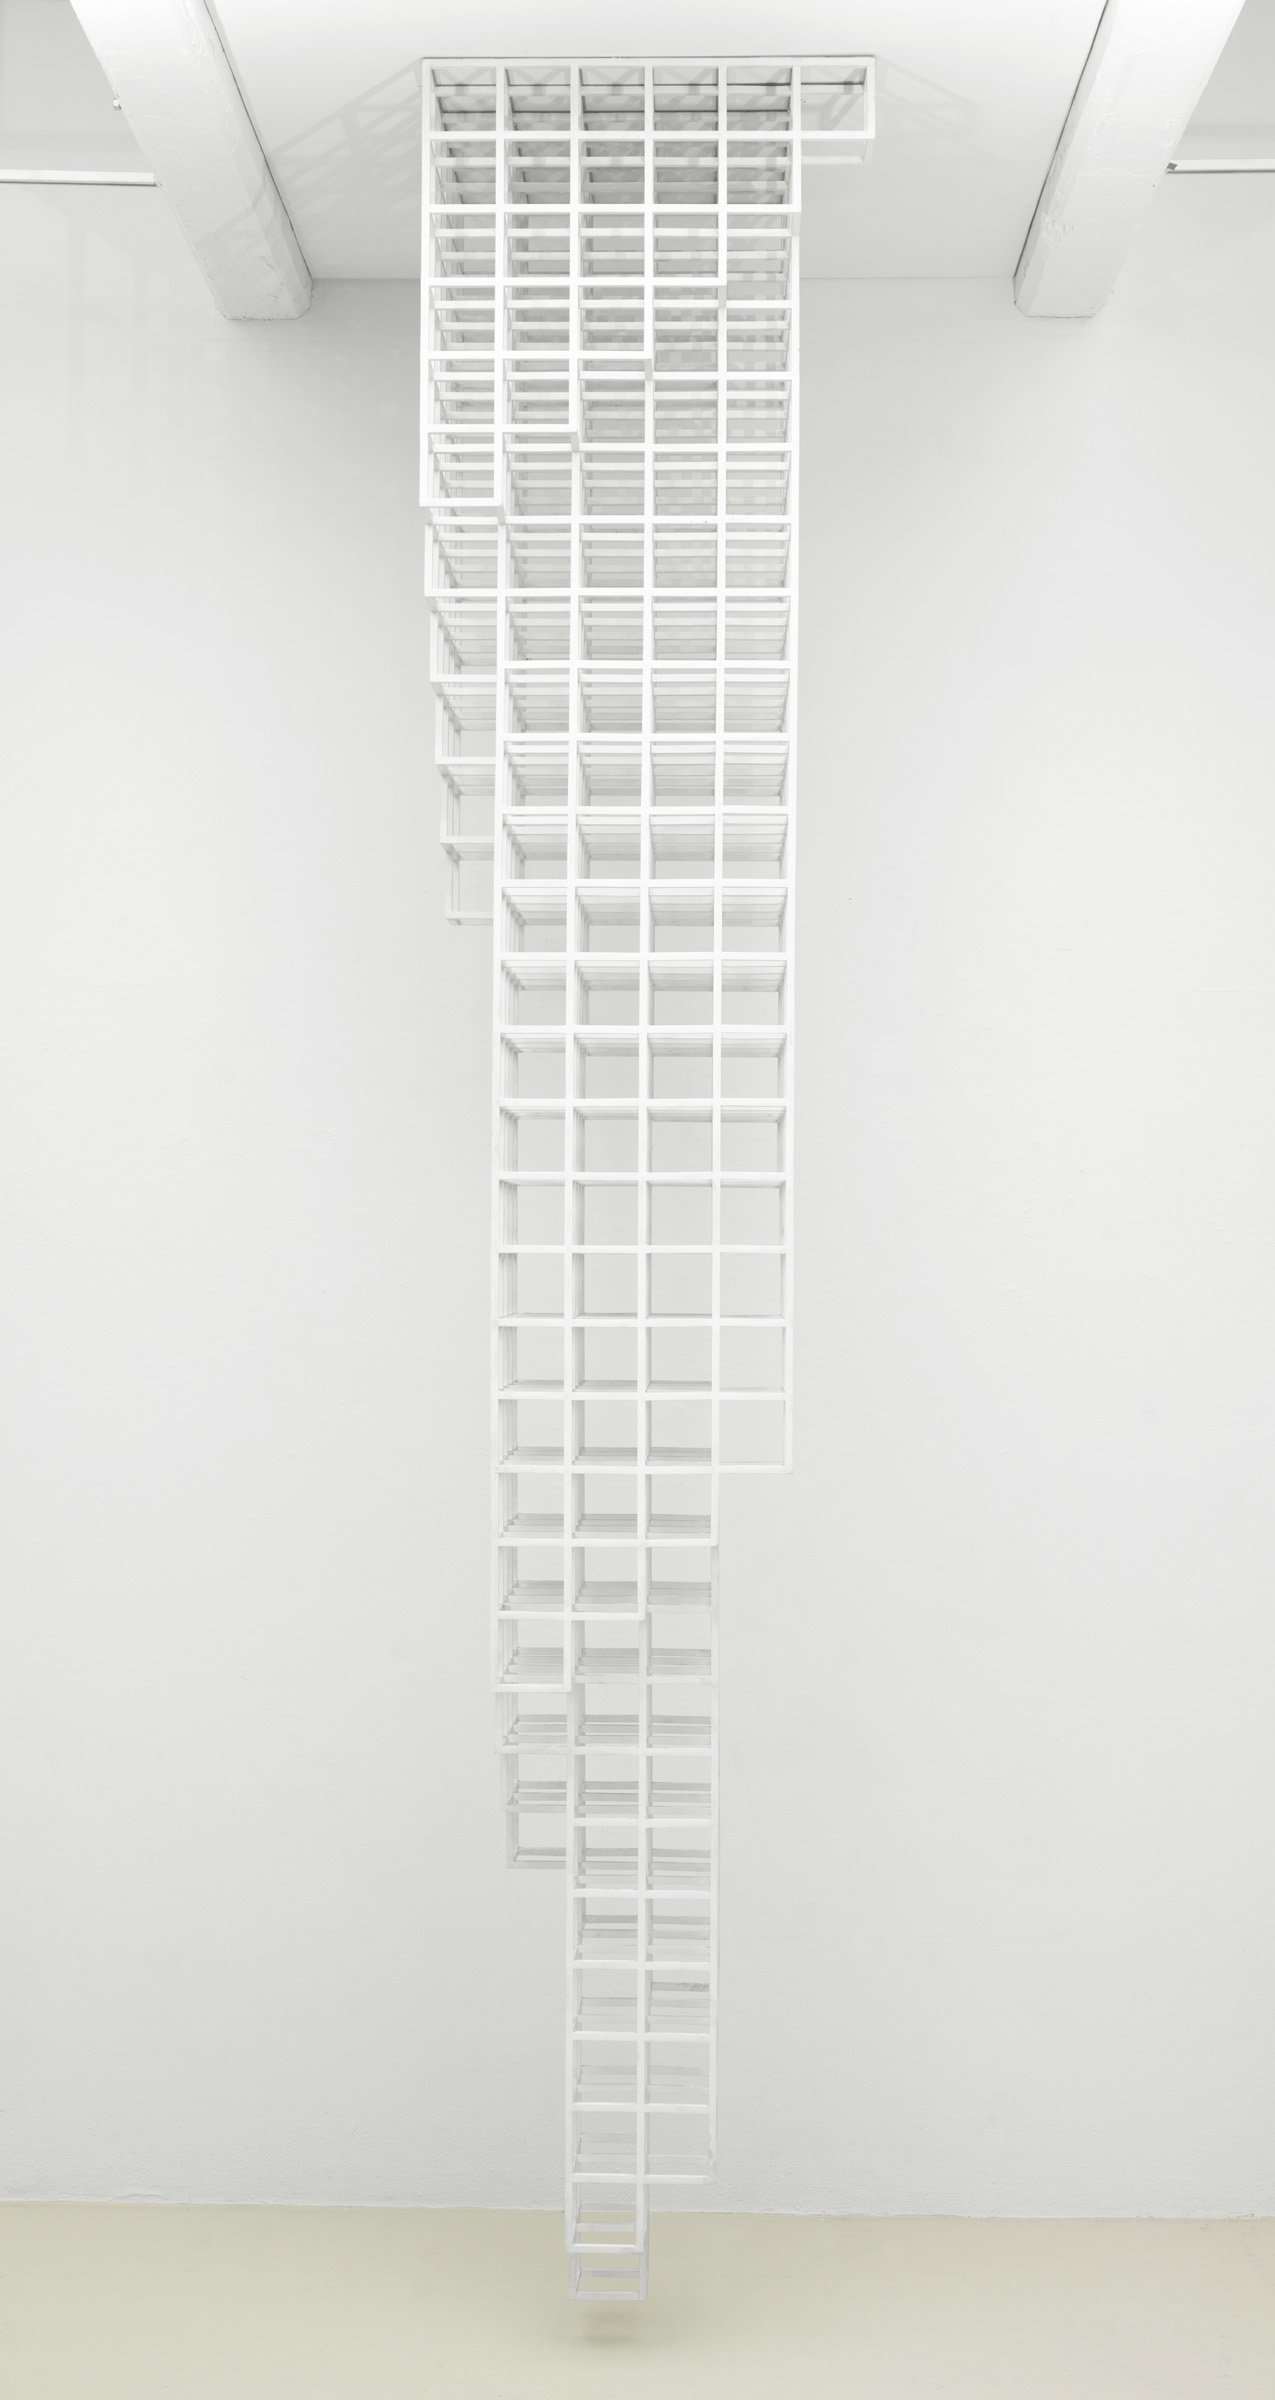 ", 1987. wood painted white, 12' 3-3/4"" x 2' 5"" x 2' 5"" (375.3 cm x 73.7 cm x 73.7 cm)."